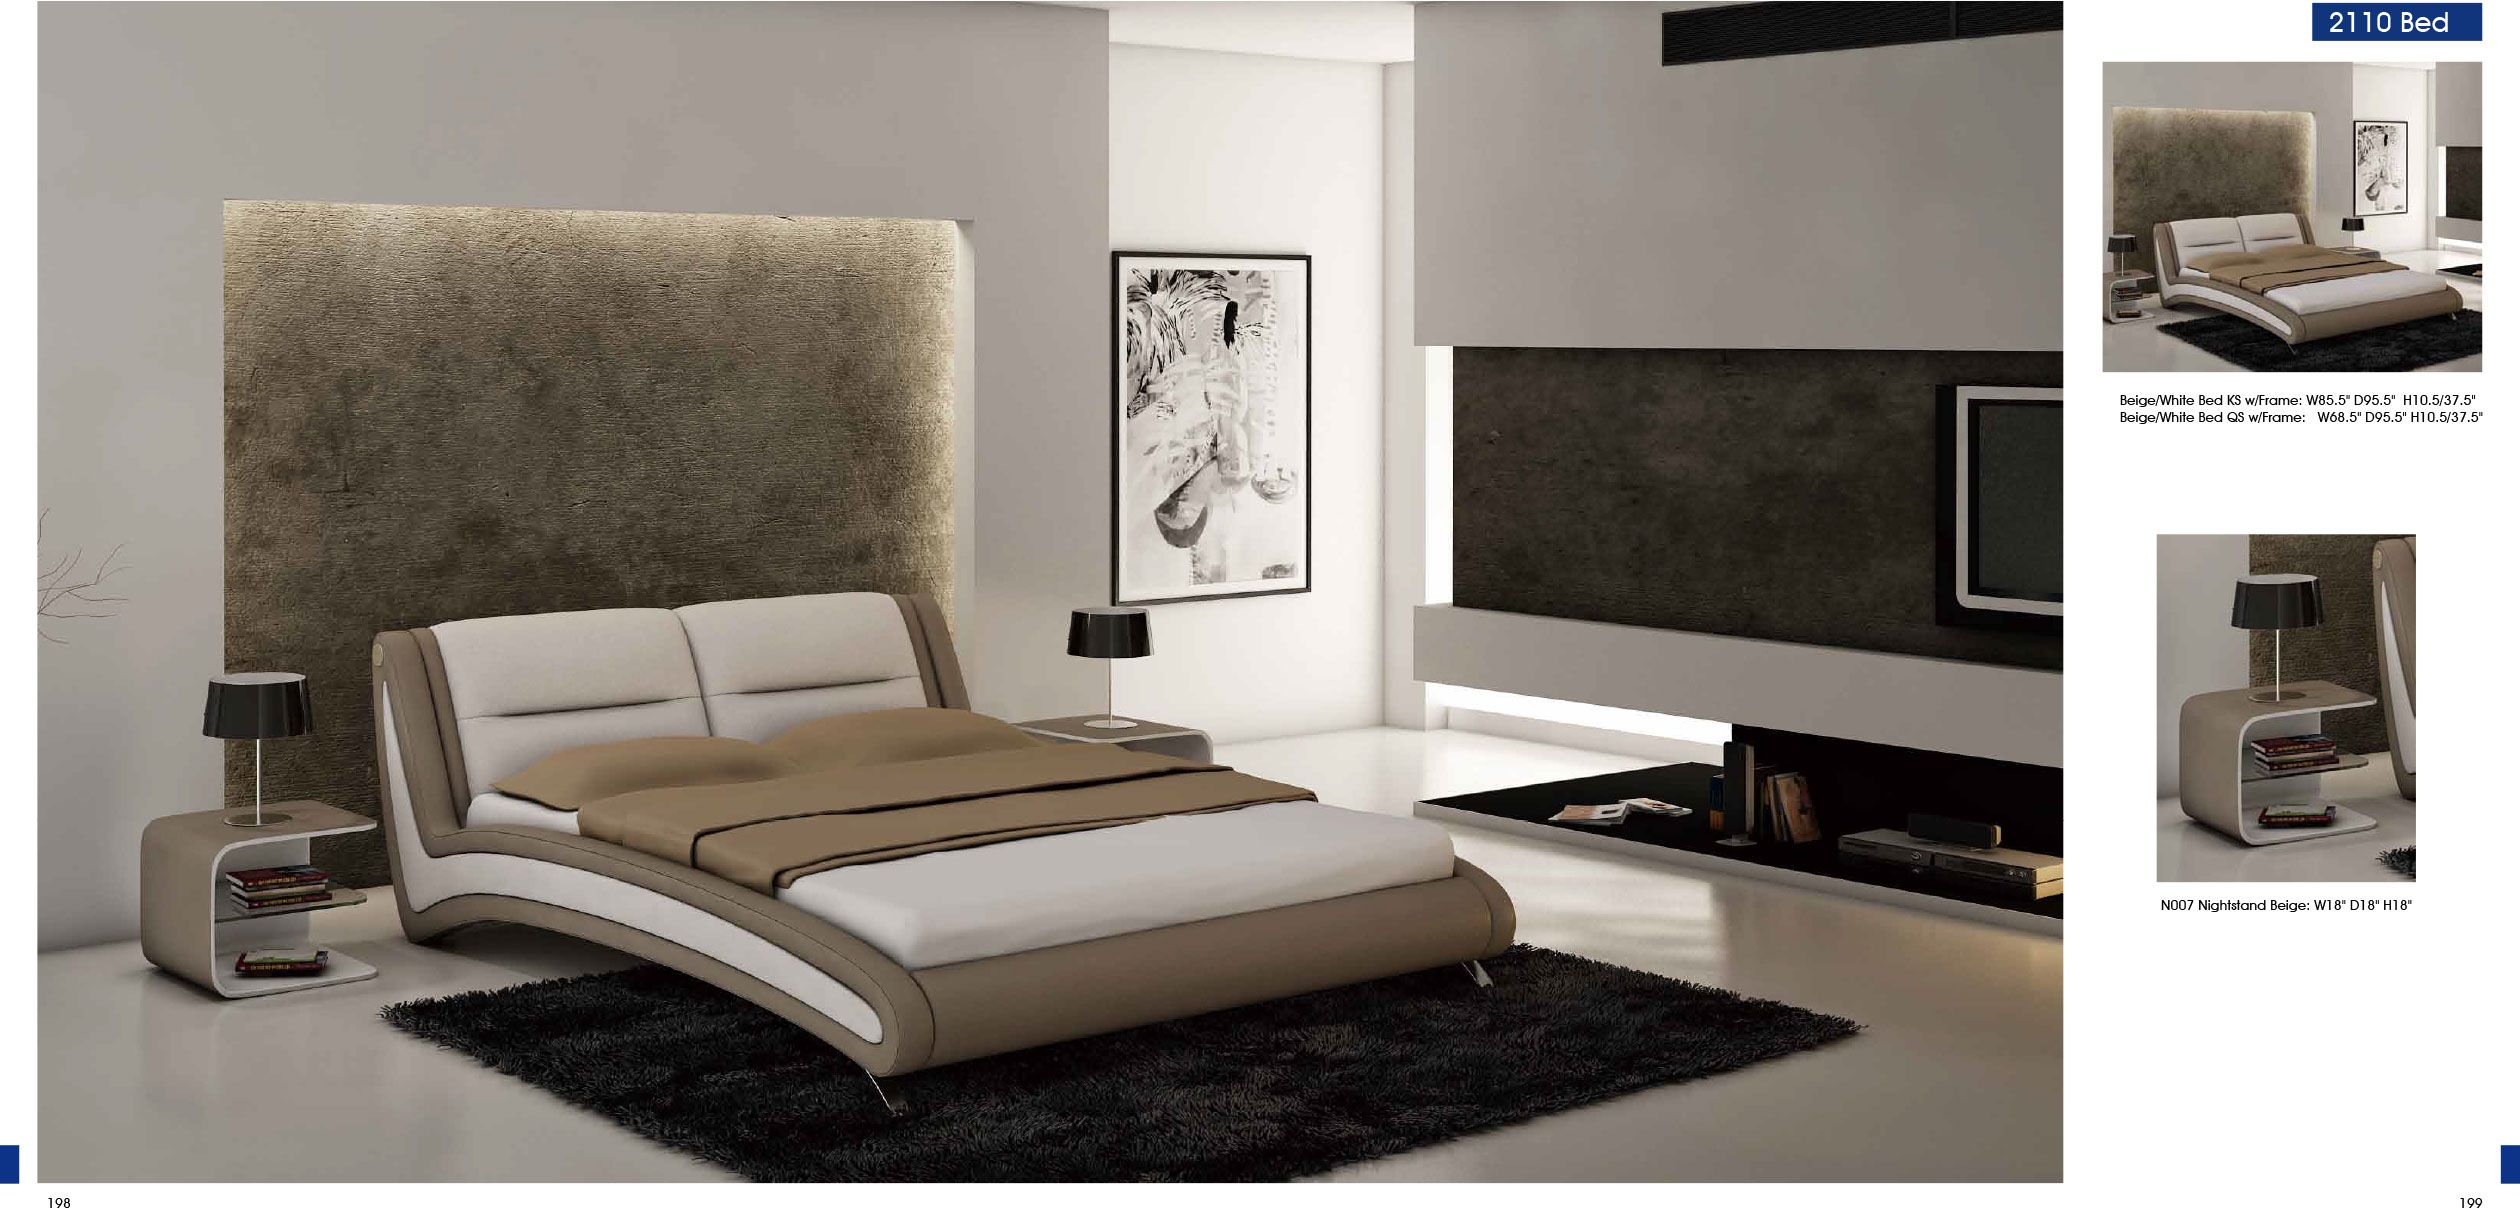 Bedroom Furniture | Bedroom Furniture Modern Bedrooms 2110 Beige ...